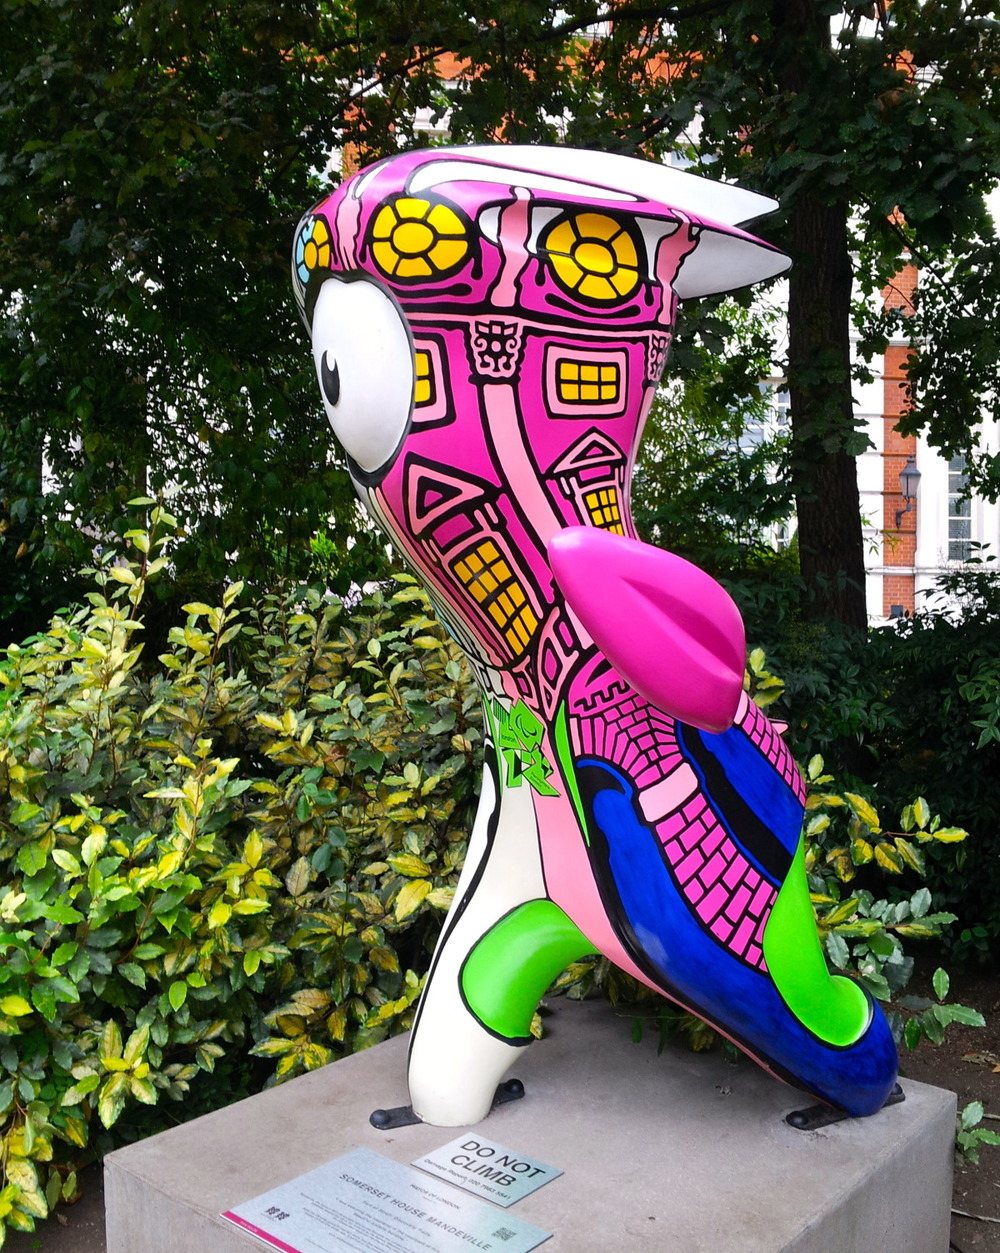 Another view of Somerset House Mandeville